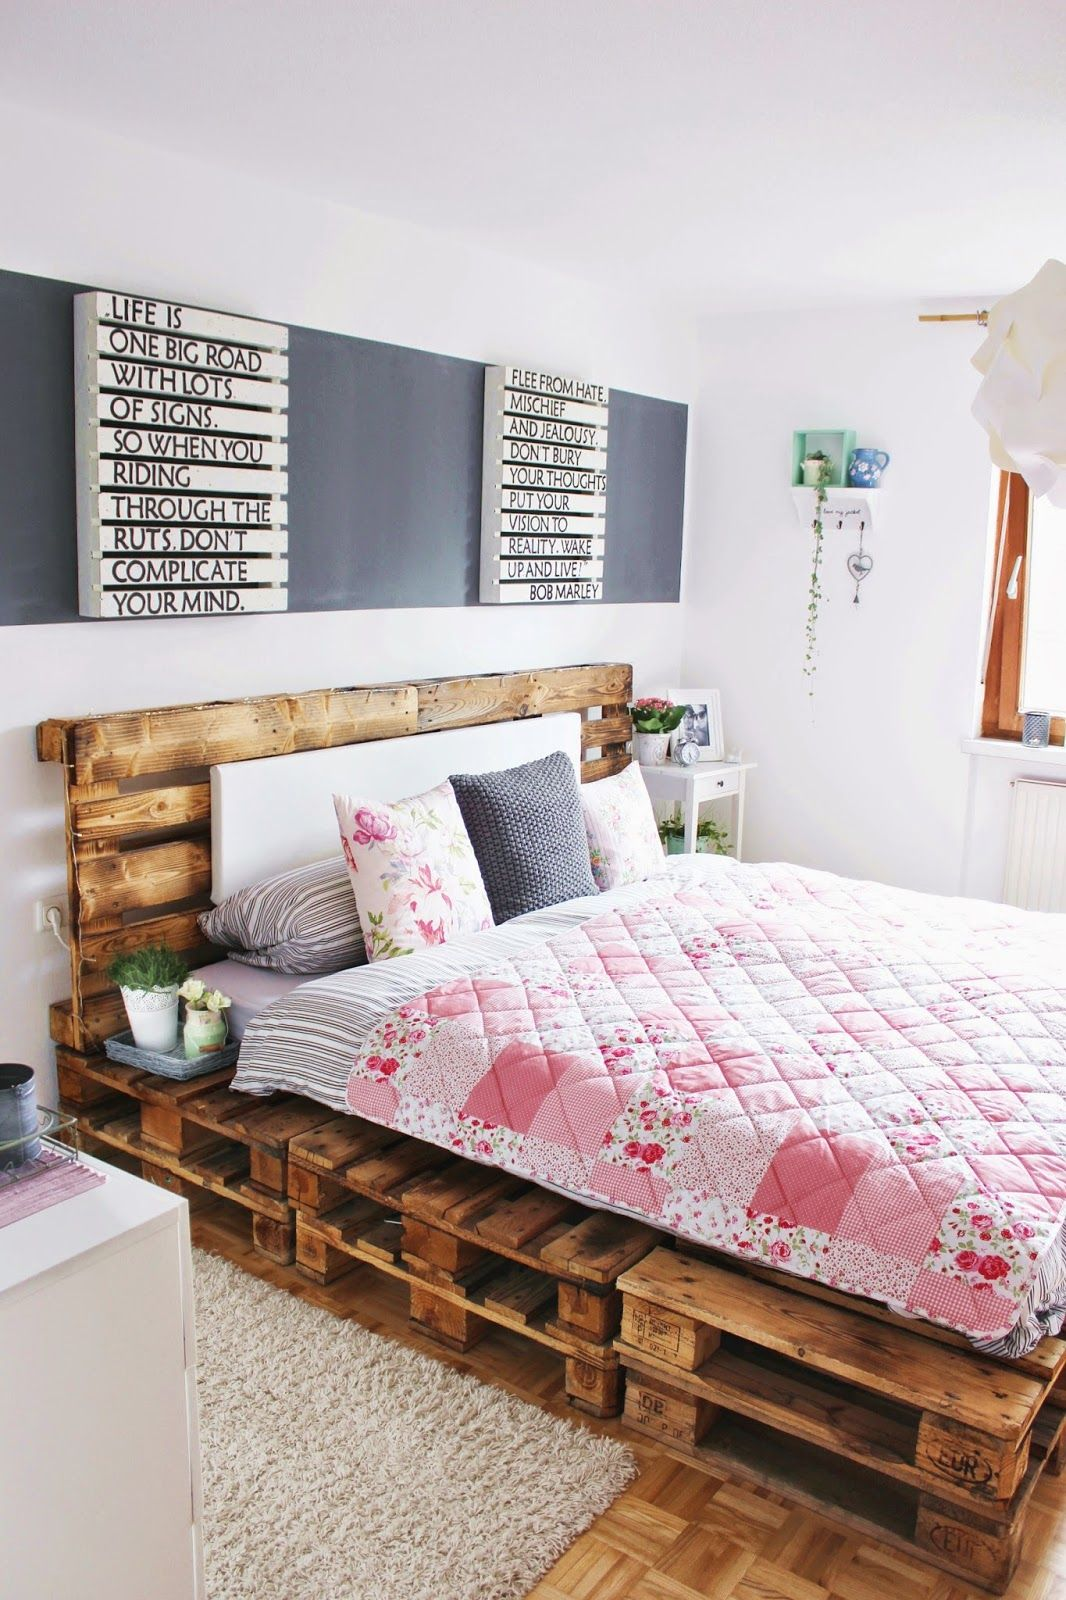 40 Creative Wood Pallet Bed Design Ideas | Pinterest | Bett aus ...